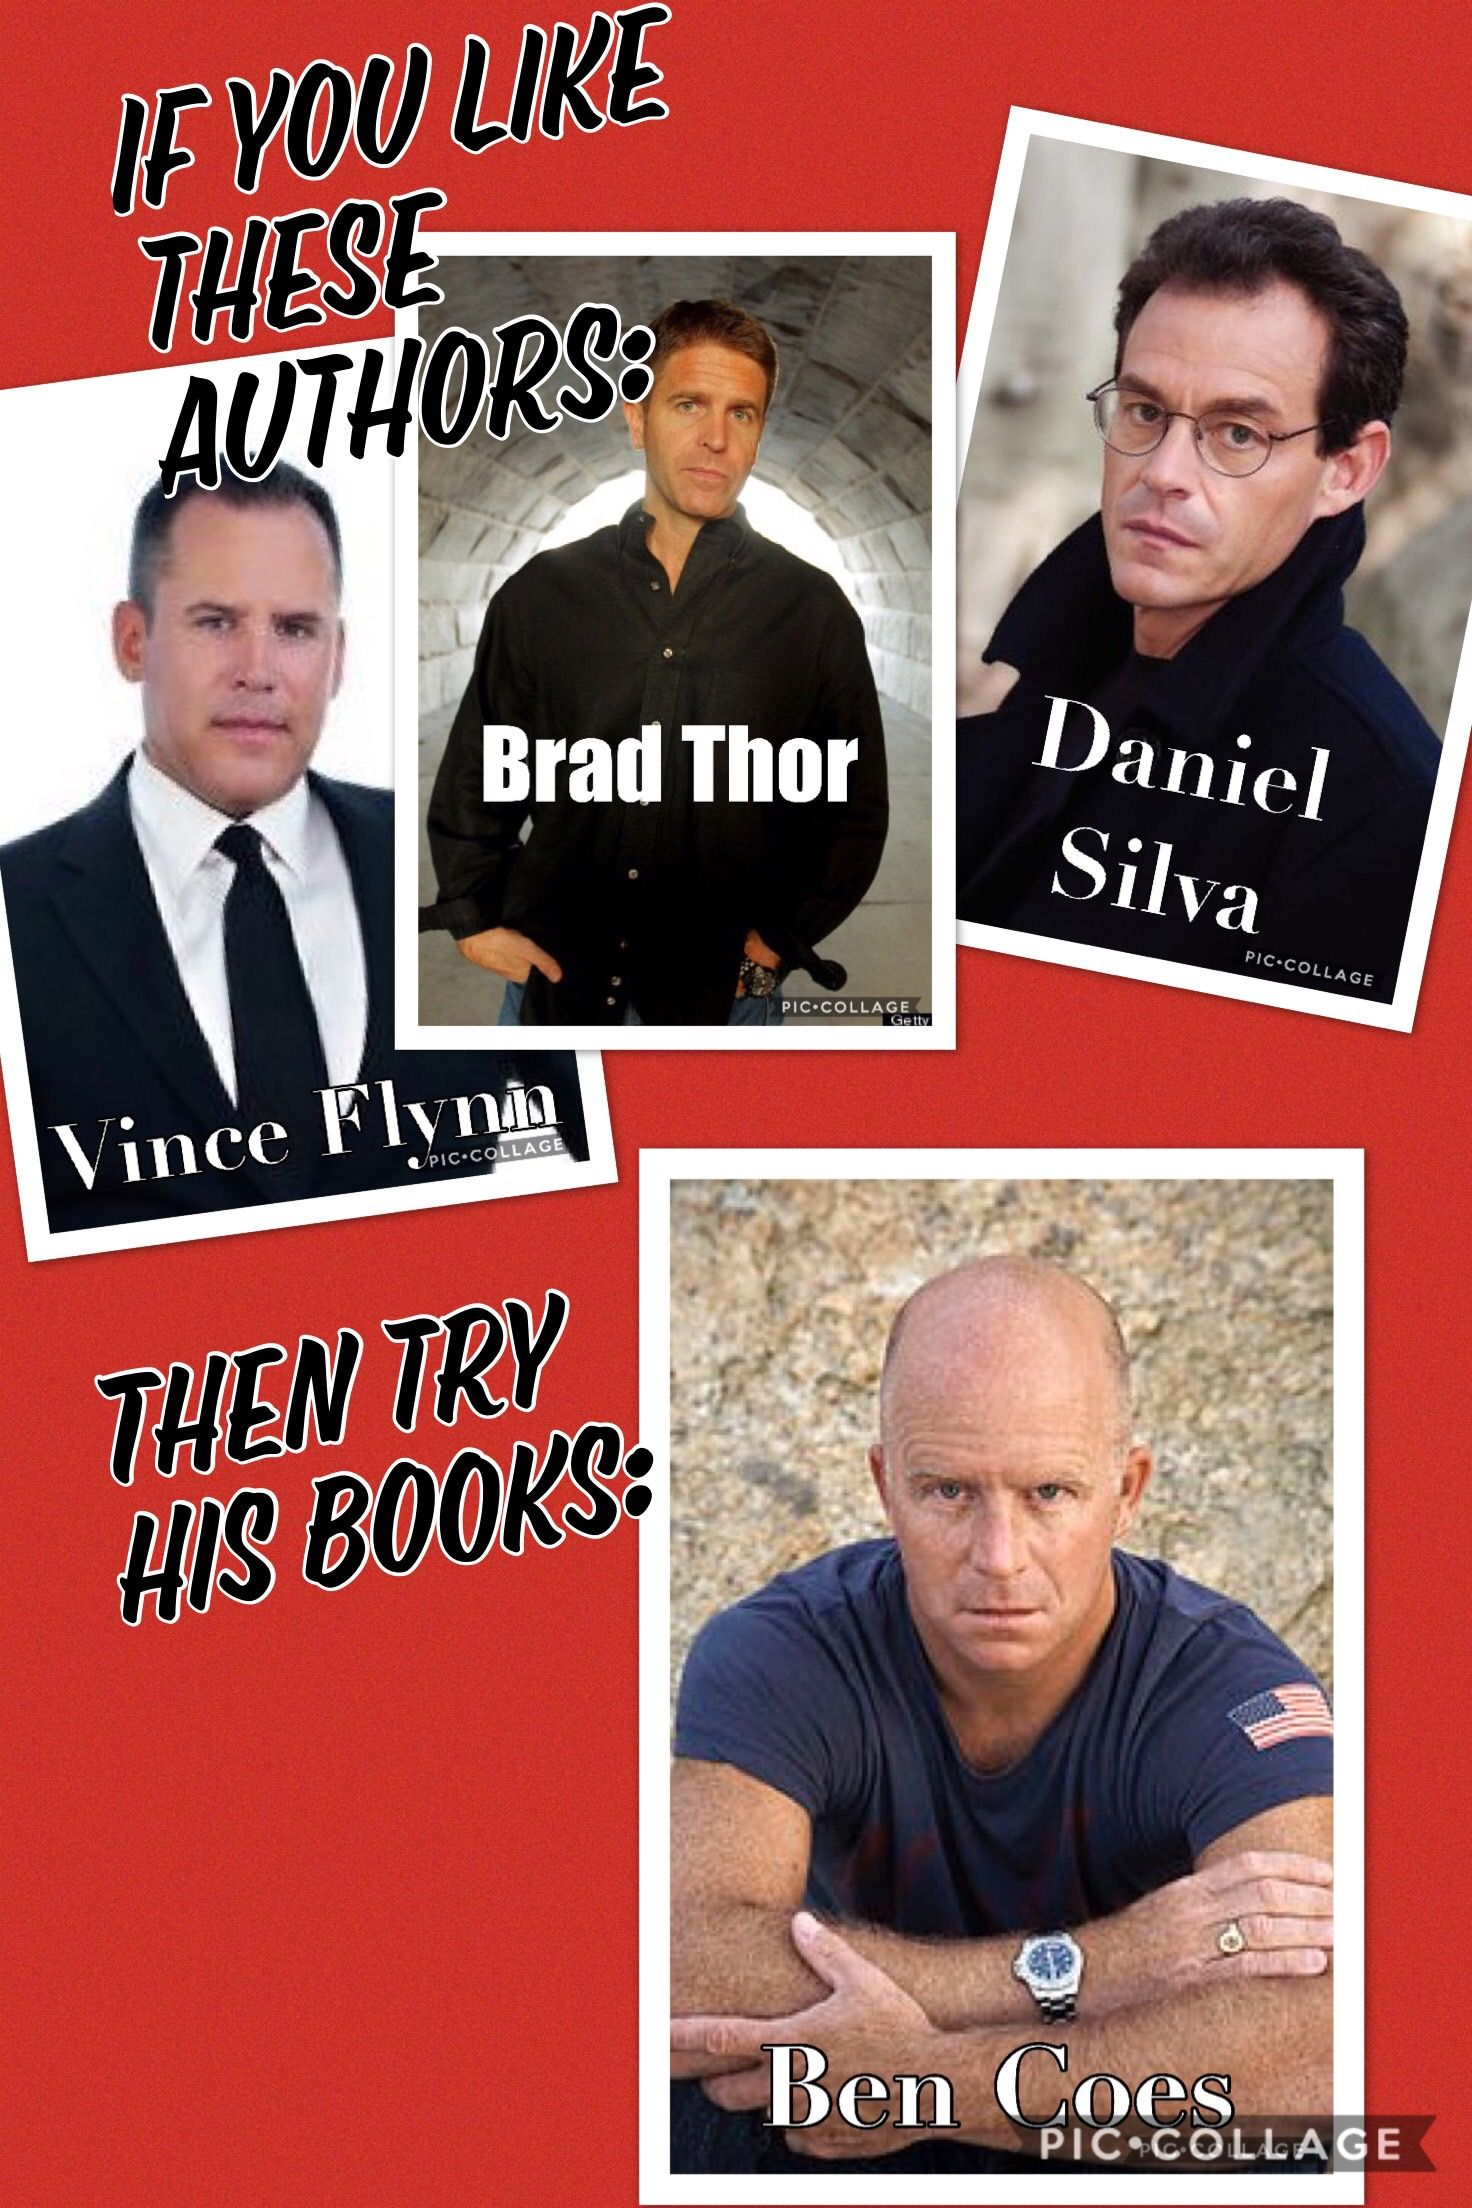 If you like any of Vince Flynn's, Brad Thor's or Daniel